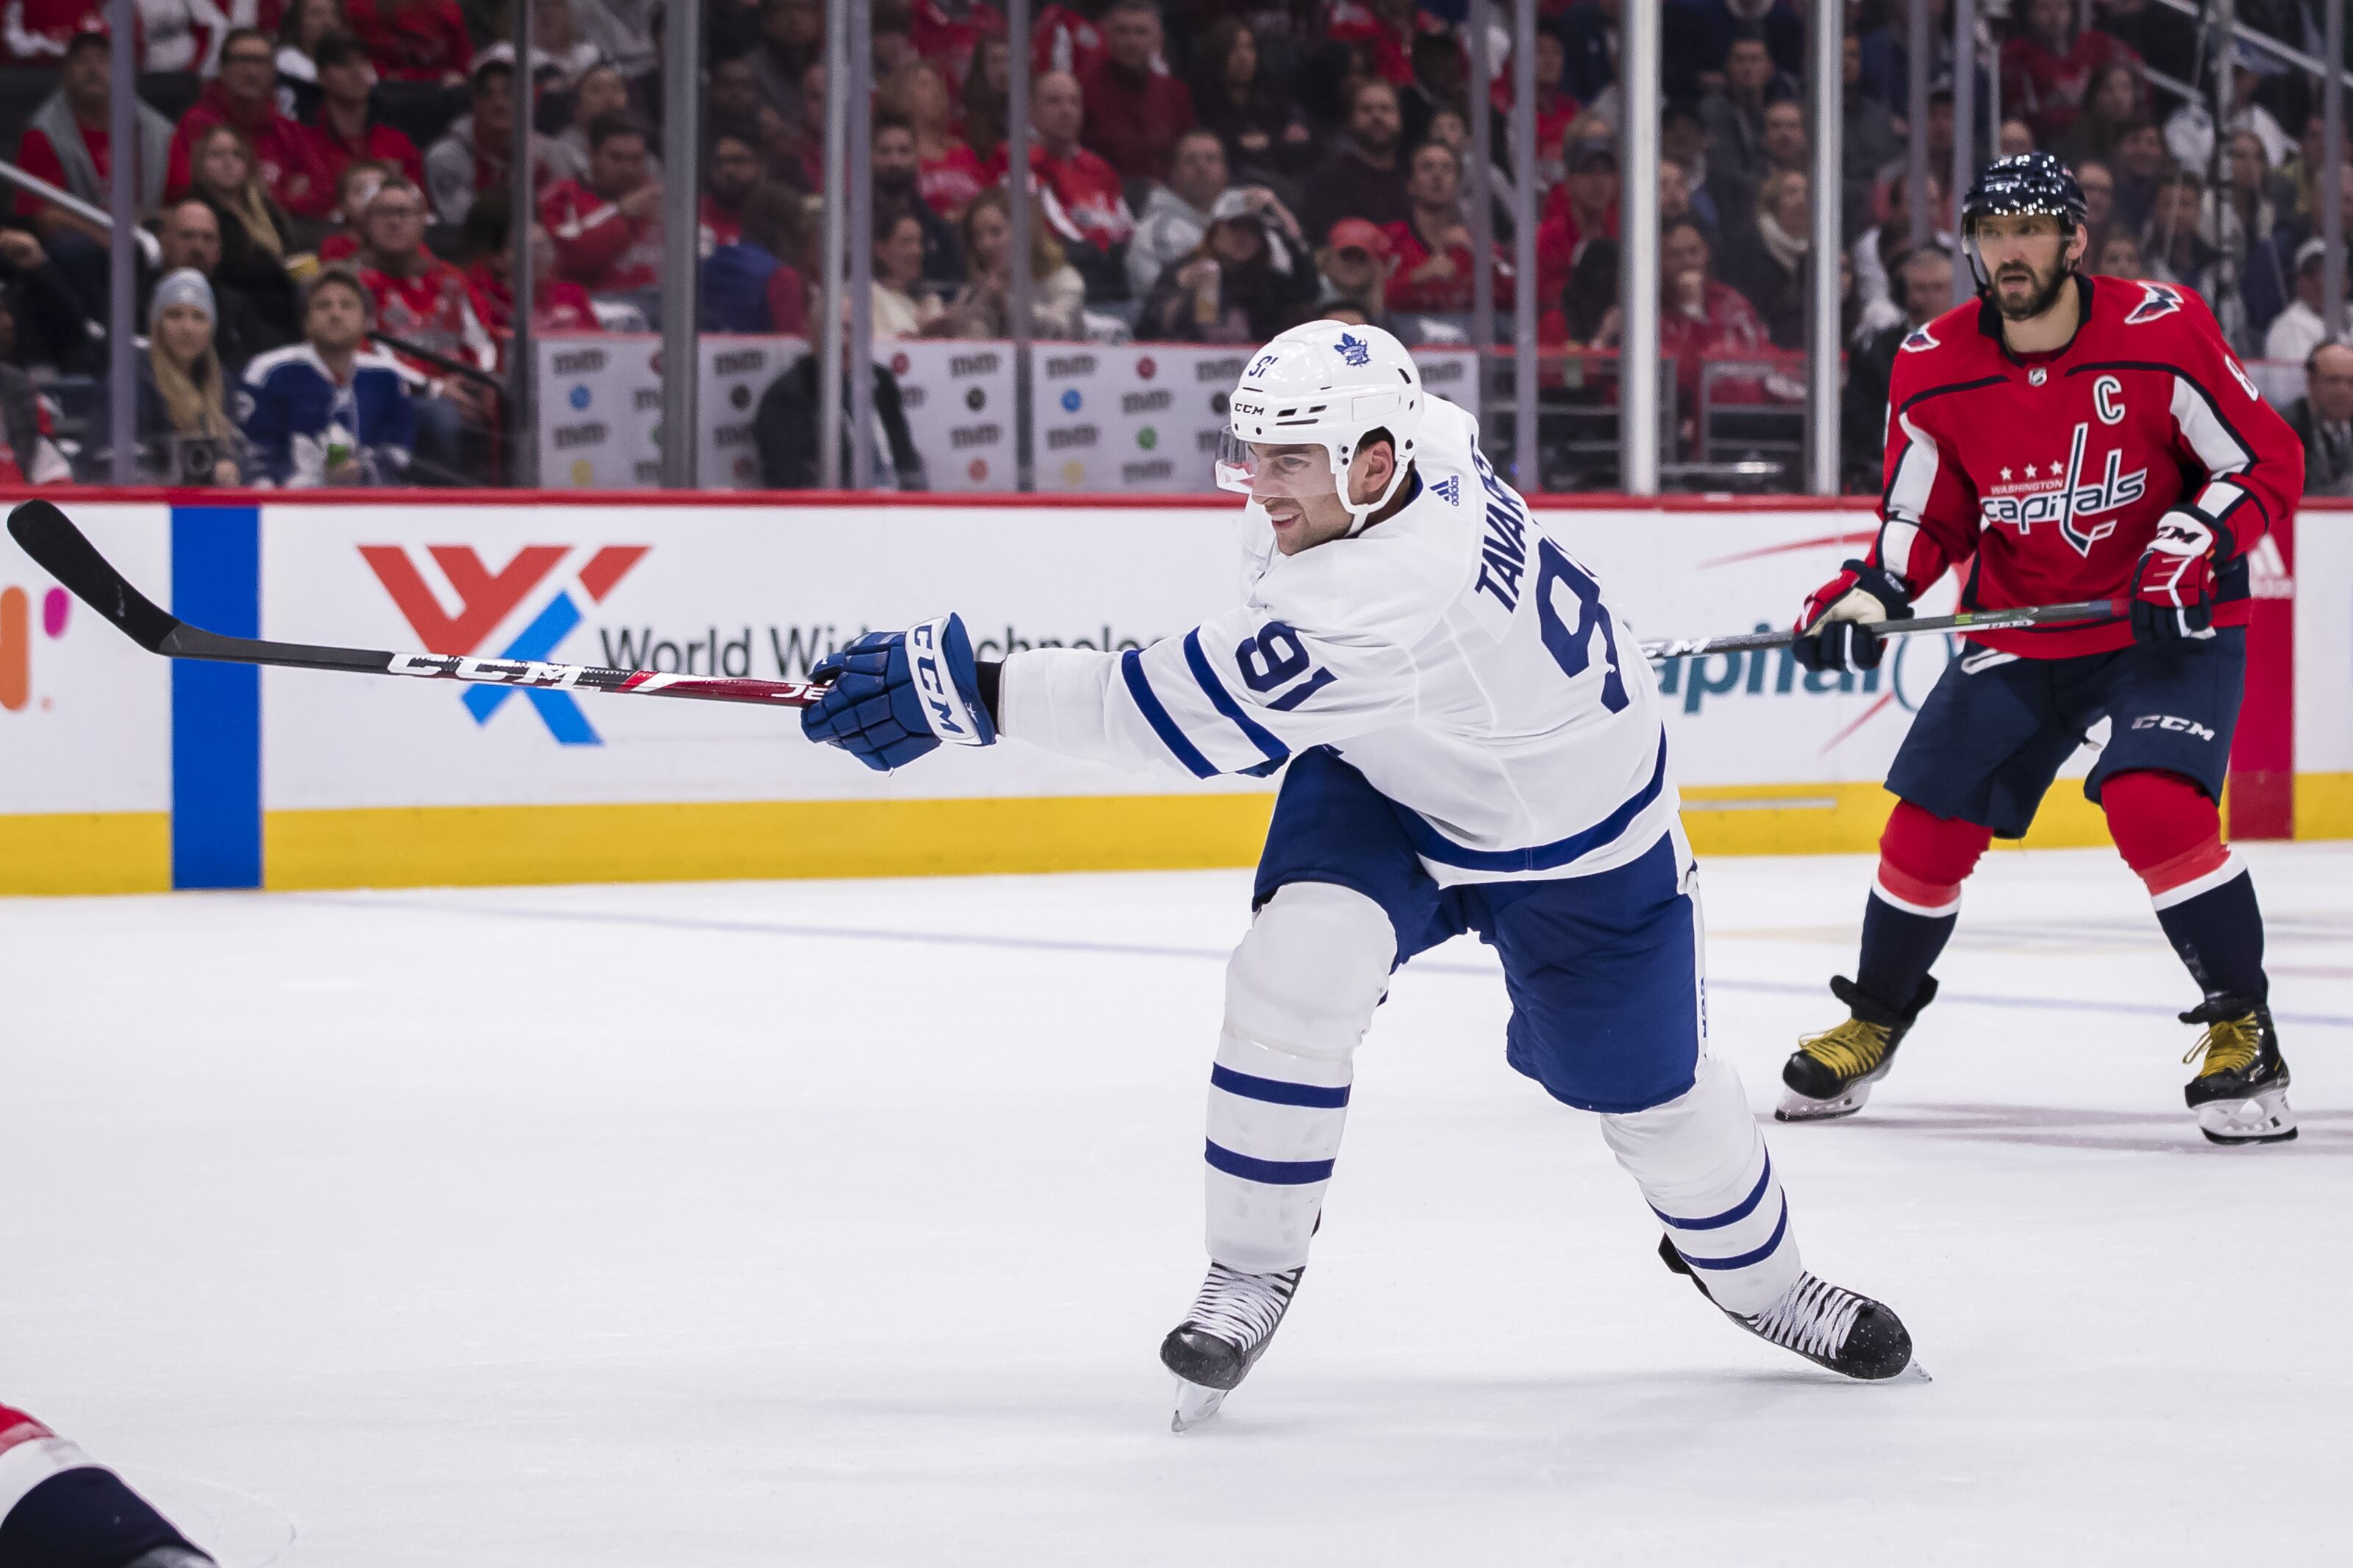 Toronto Maple Leafs have tough road ahead with John Tavares injury